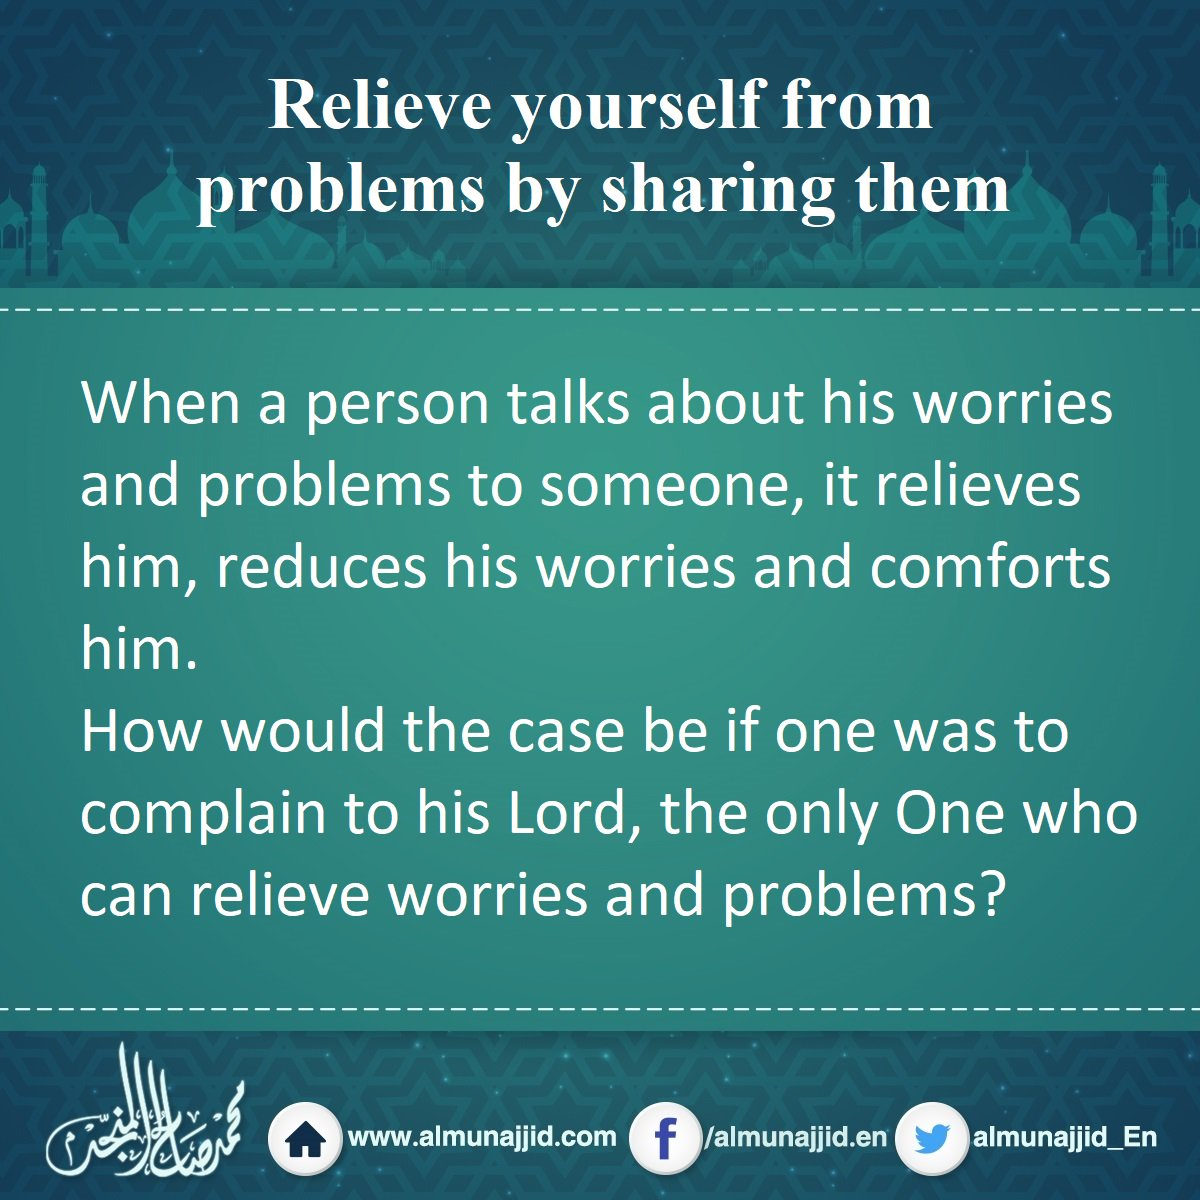 Relieve yourself from problems by sharing them #problem #complain #lord #Allah<br>http://pic.twitter.com/v4pYIhbe3W